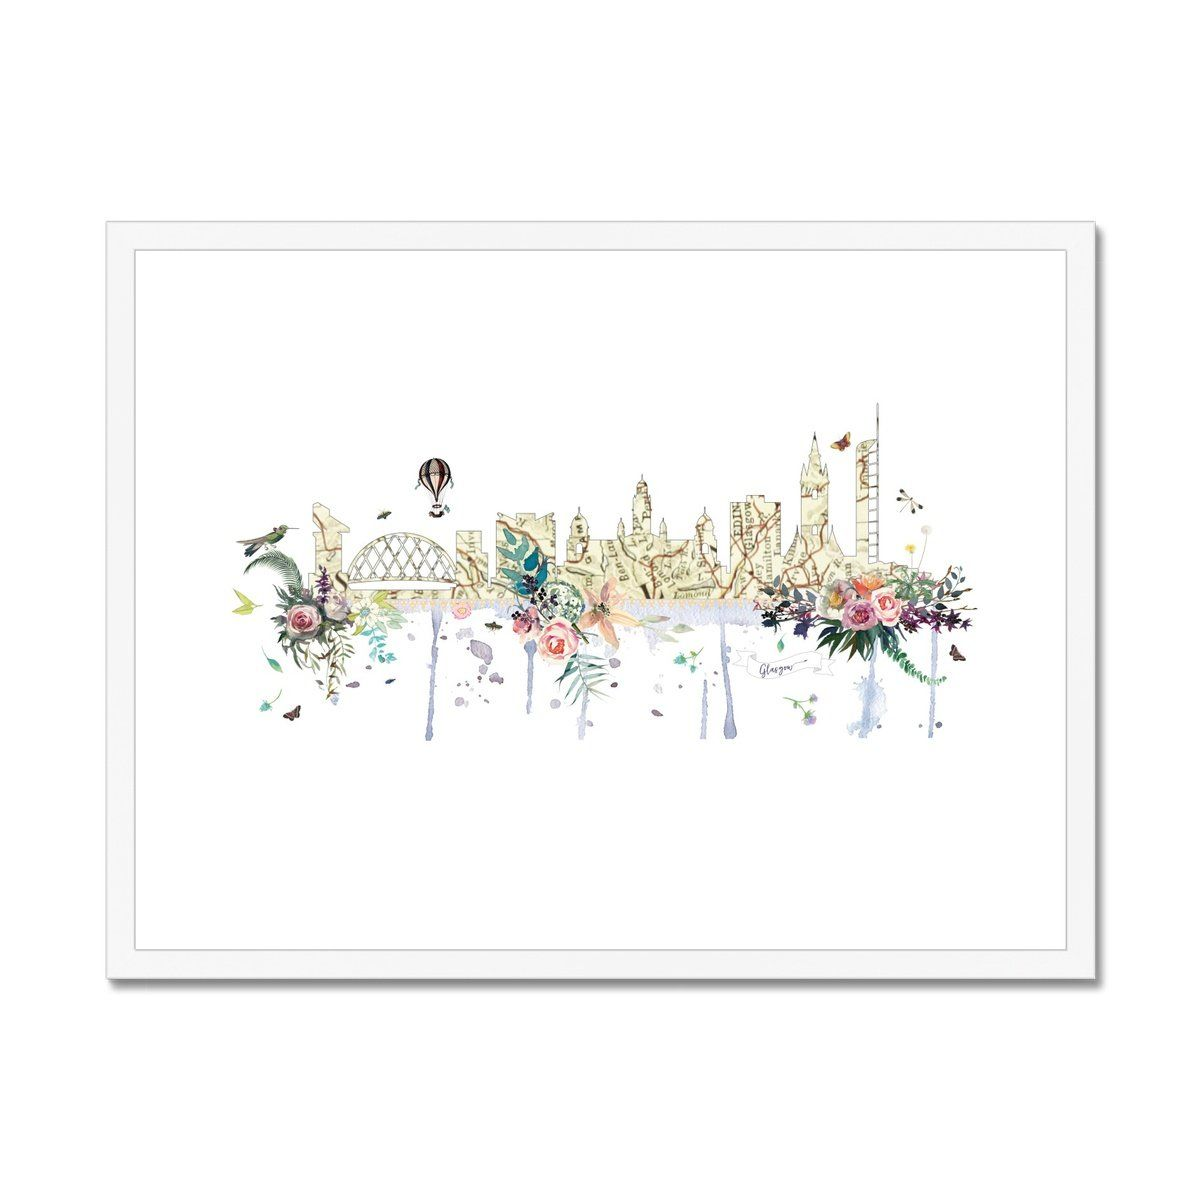 Glasgow Framed & Mounted Print